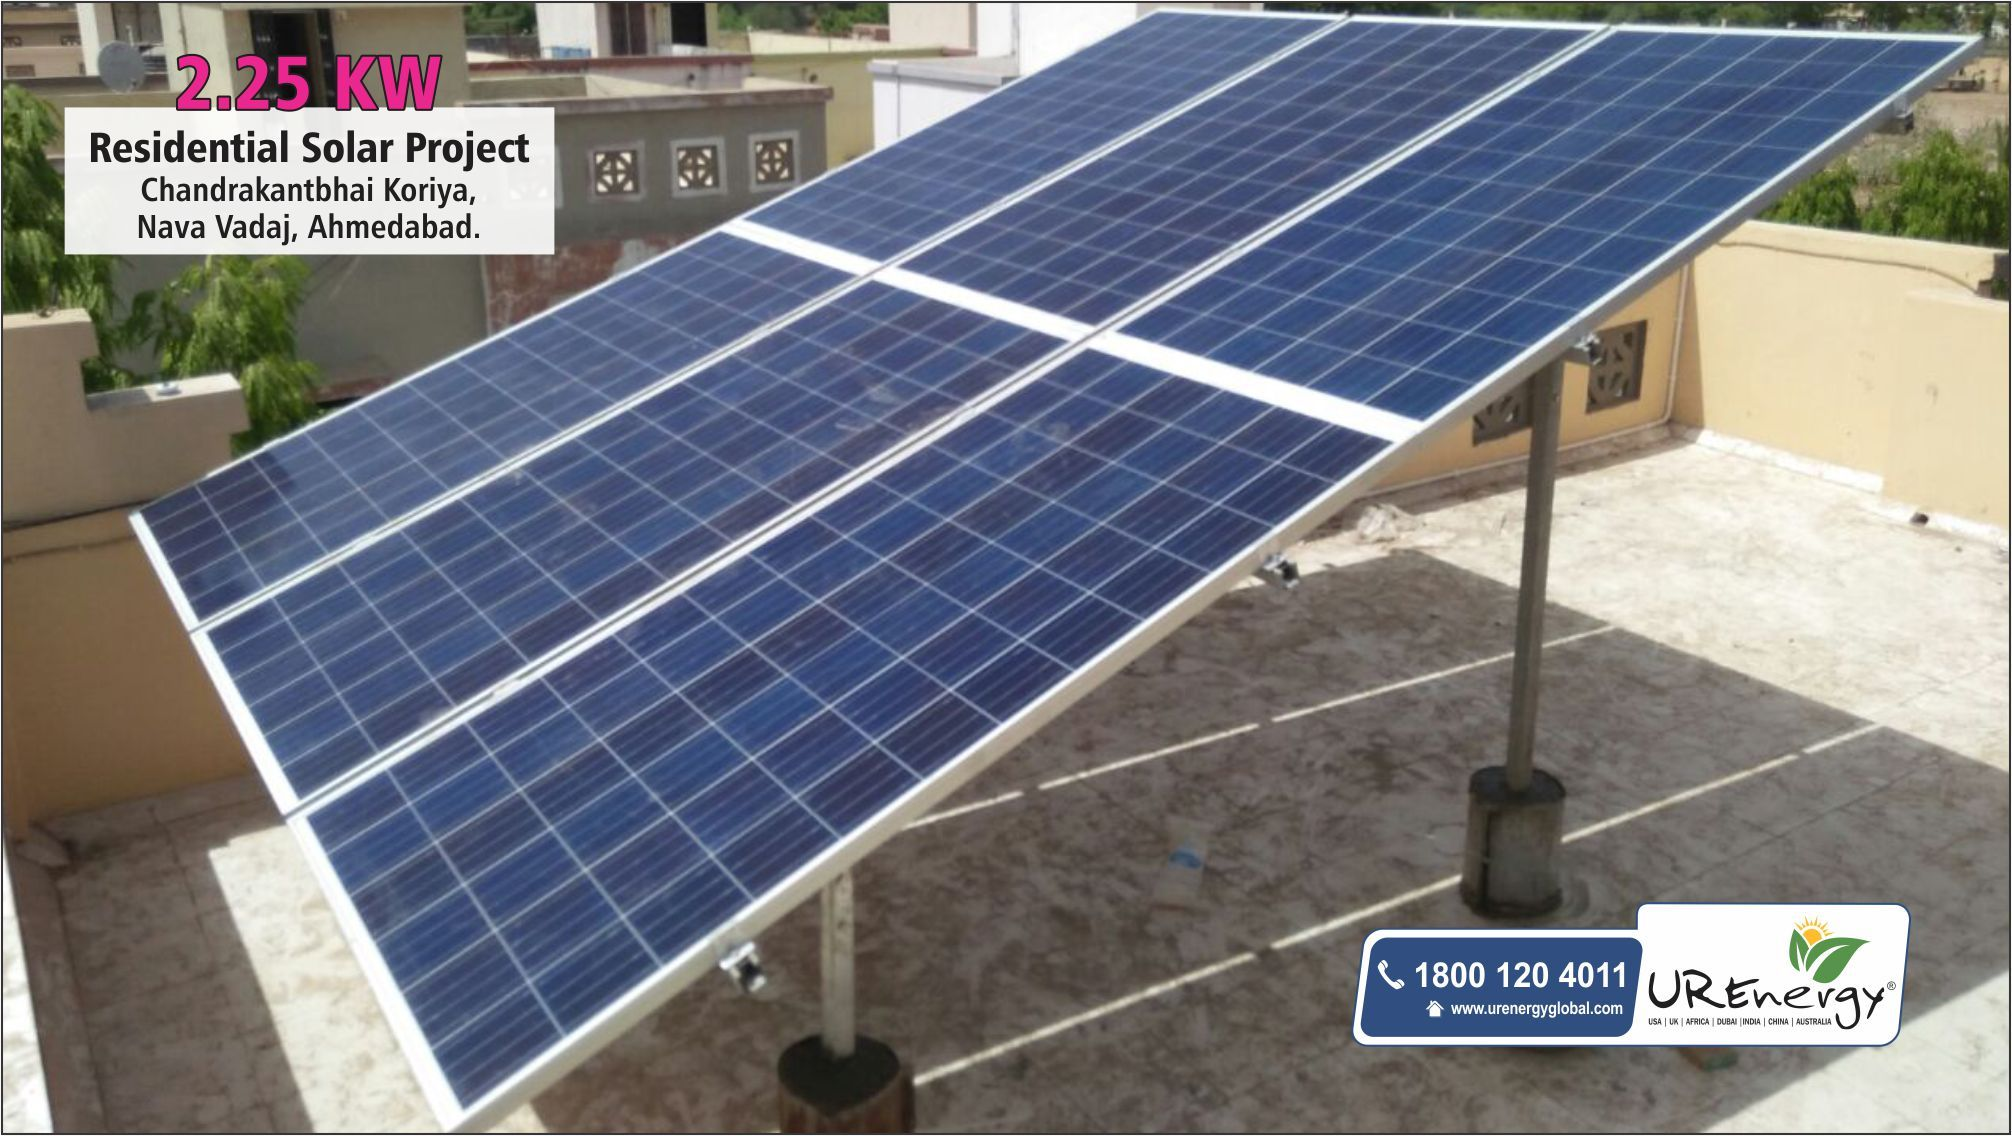 Rooftop Solar Panel Inverters Water Pump Solar Epc Gujarat India U R Energy Solar Panels Solar Solar Loan